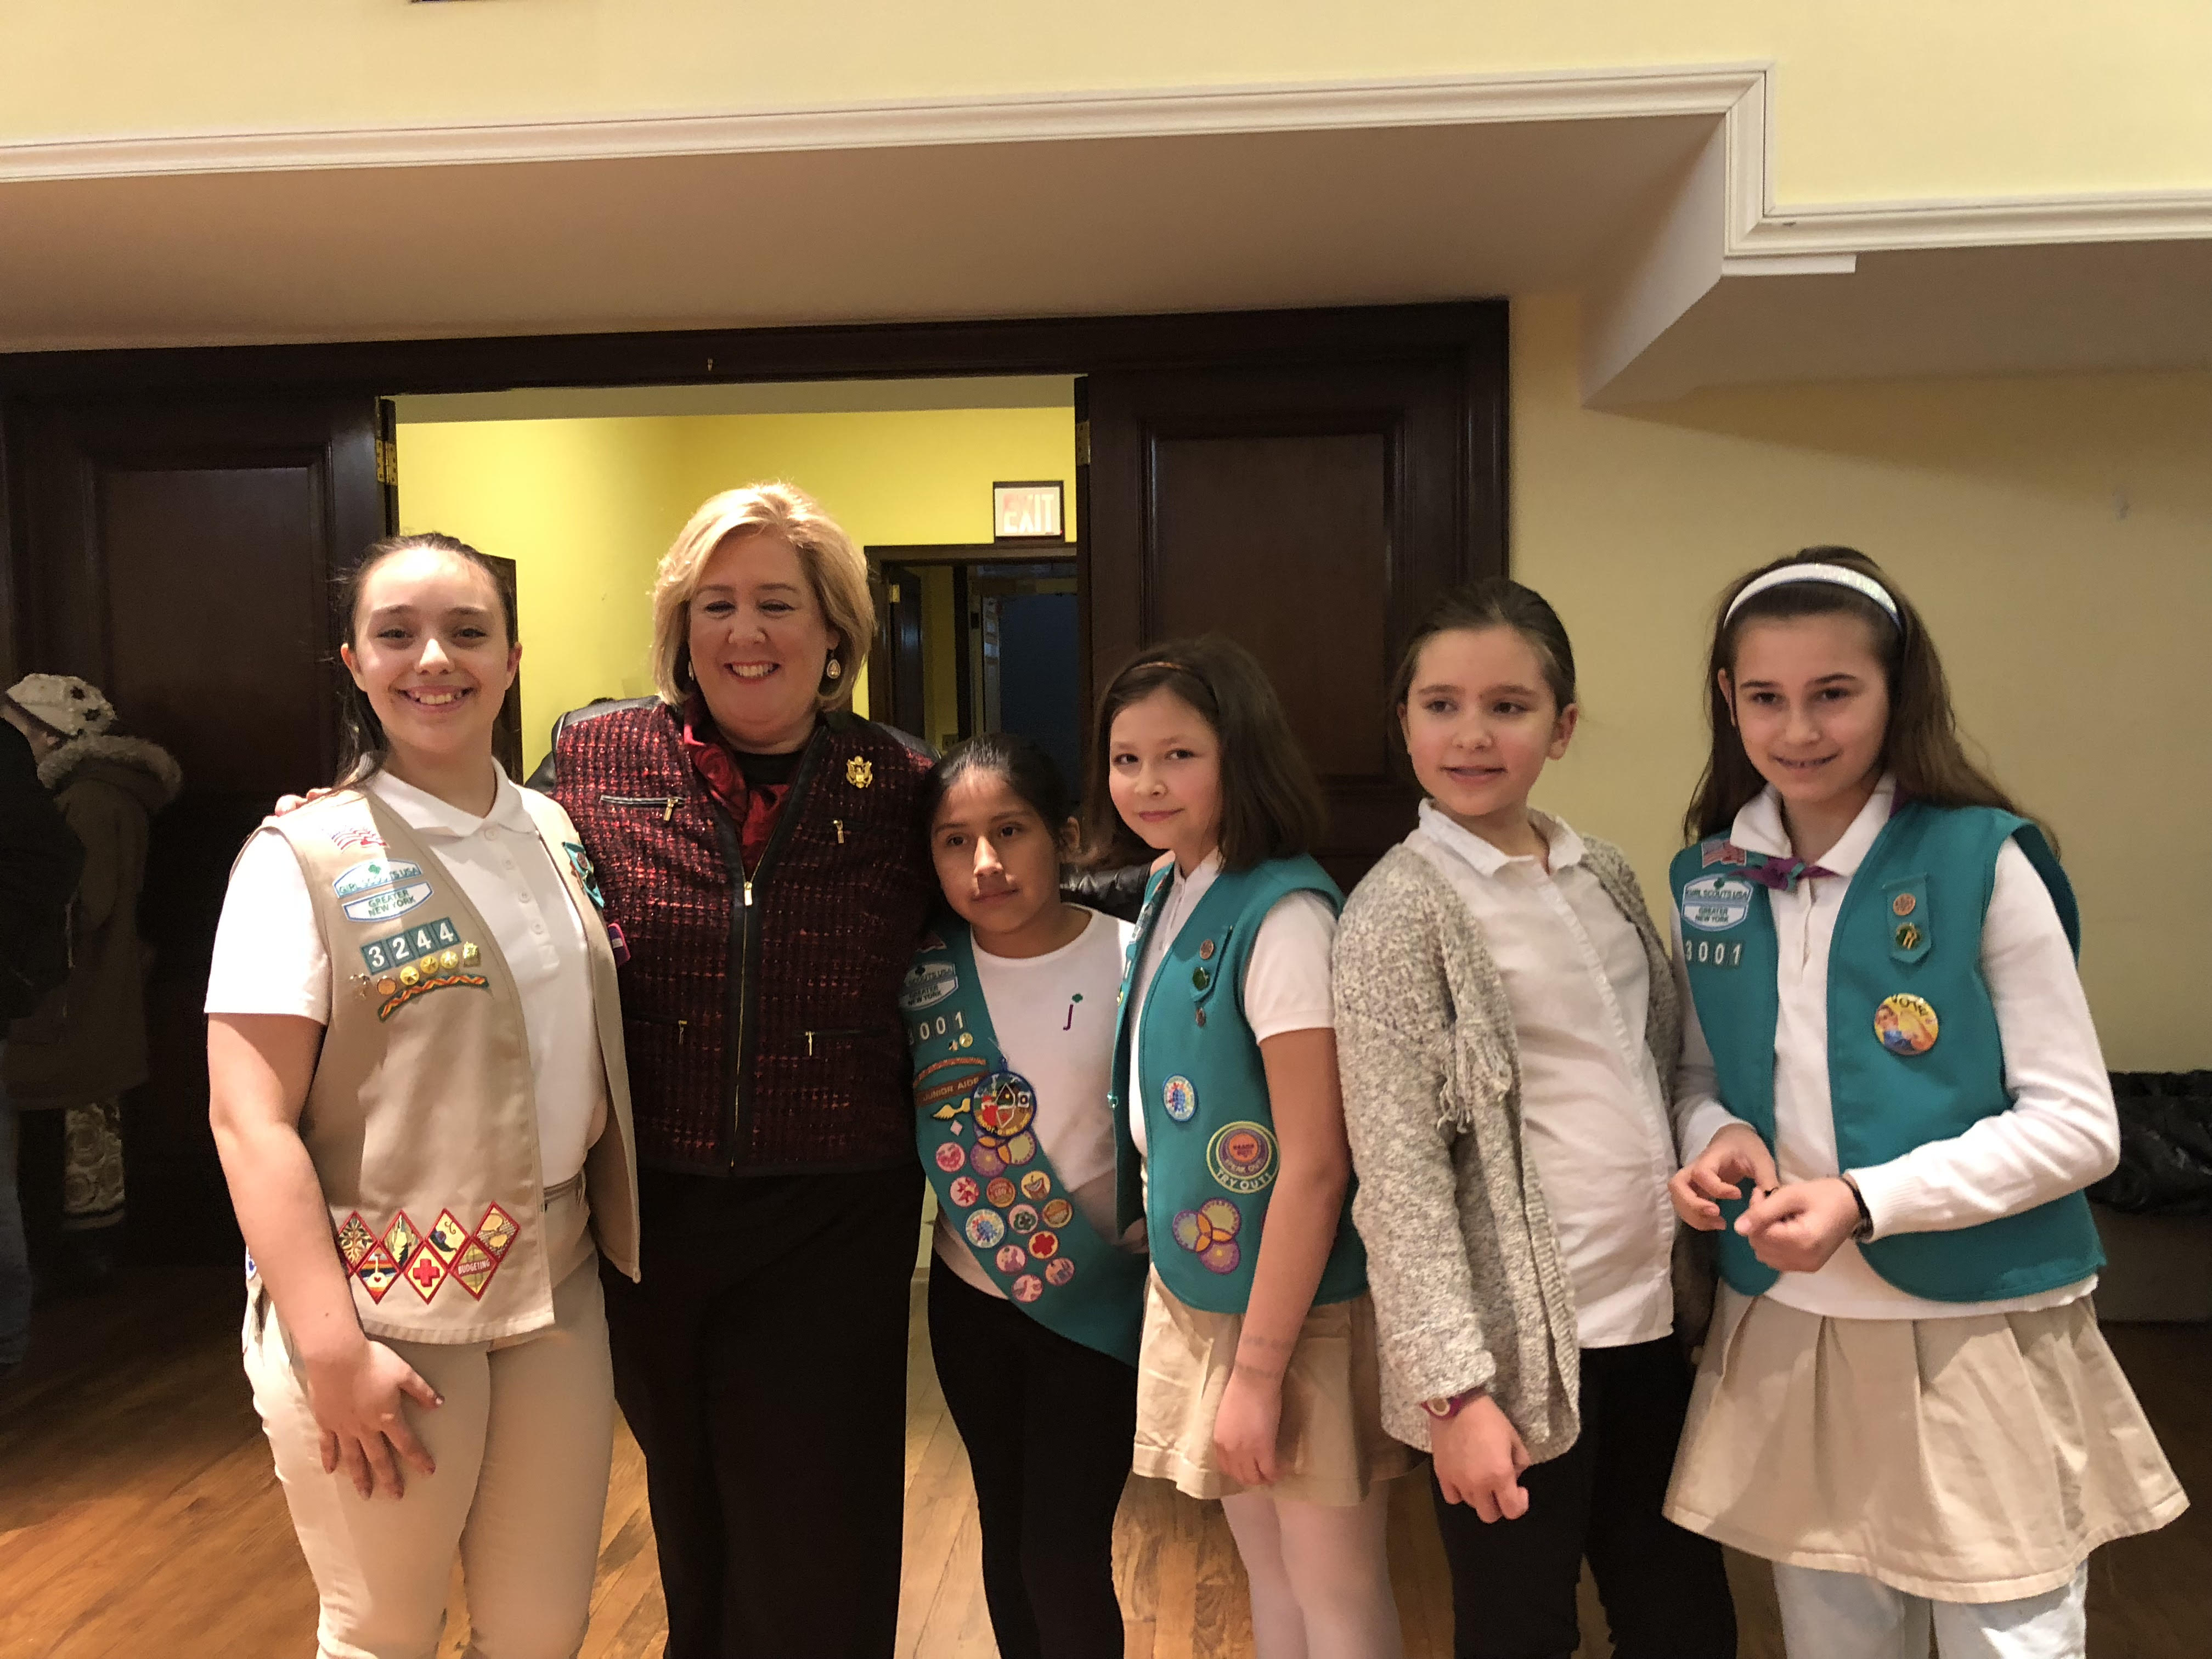 Seawright with Roosevelt Island Girl Scouts from her district.